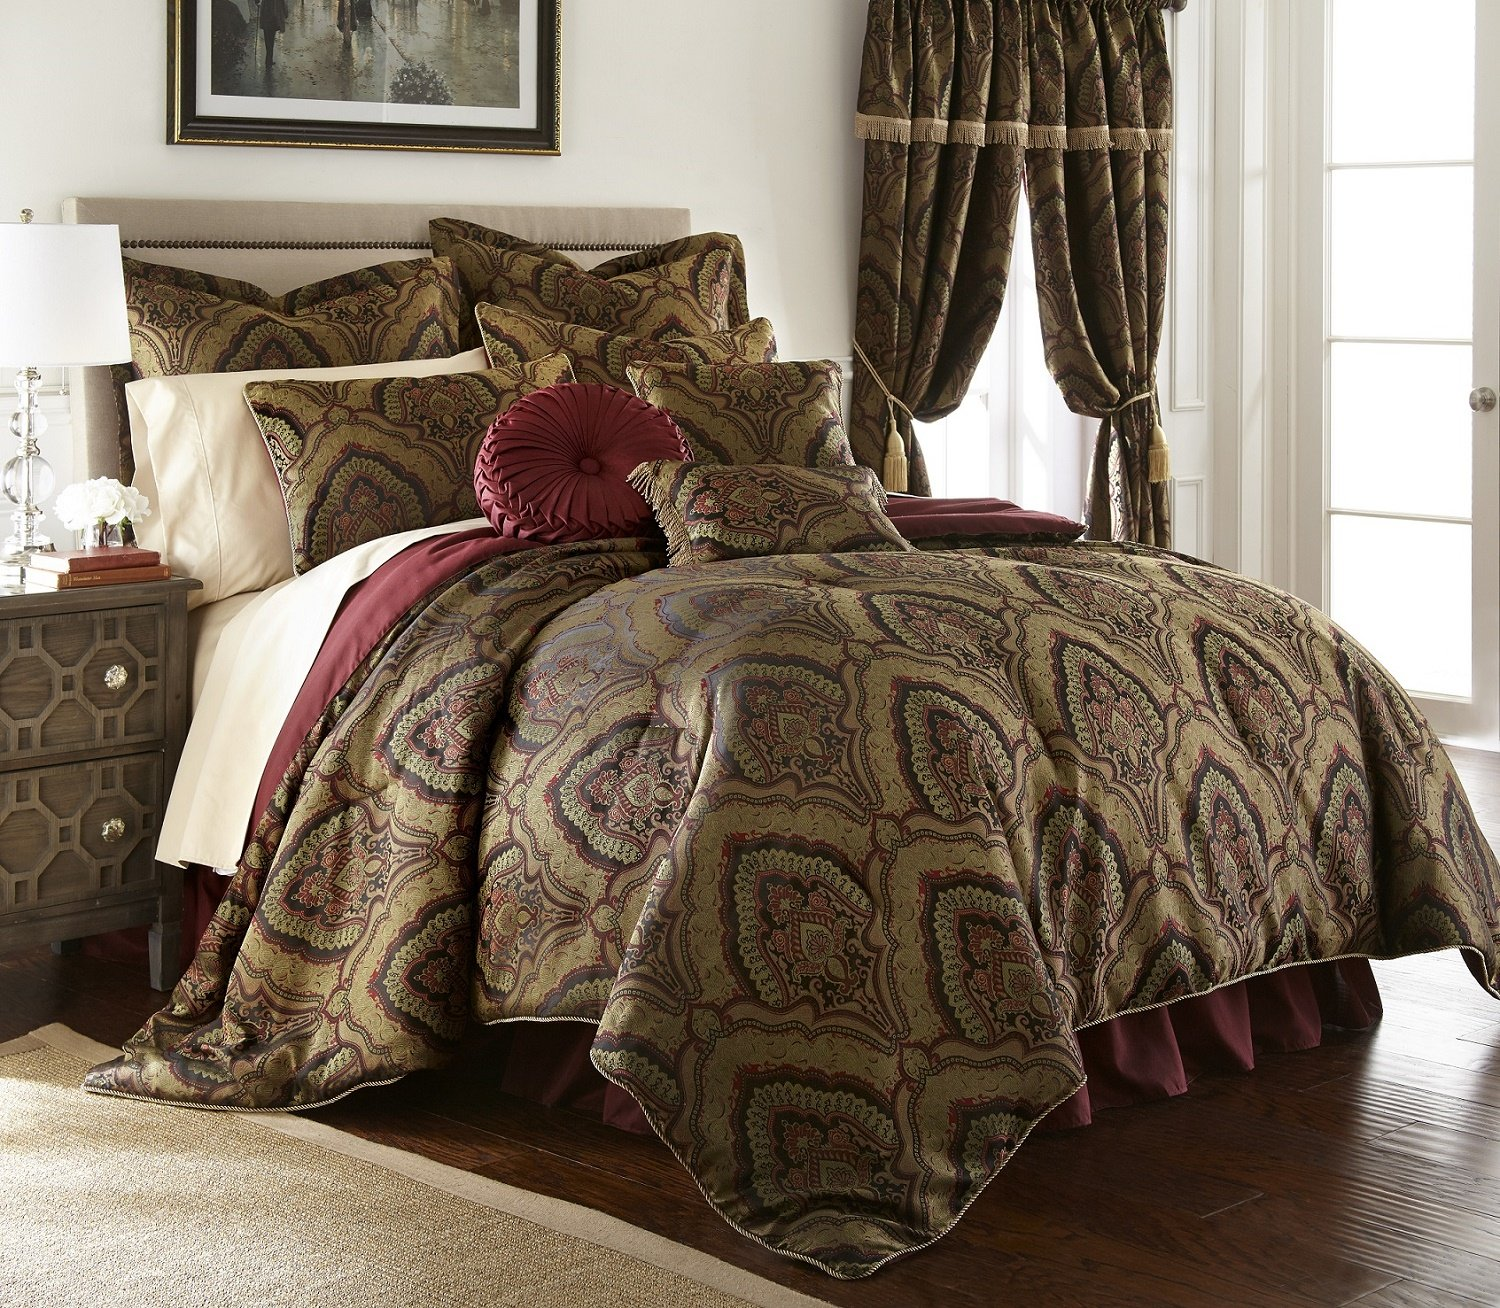 Chezmoi Collection Seville 9-piece Jacquard Green Gold Maroon Medallion Paisley Oversized Comforter Set, King 110''x96